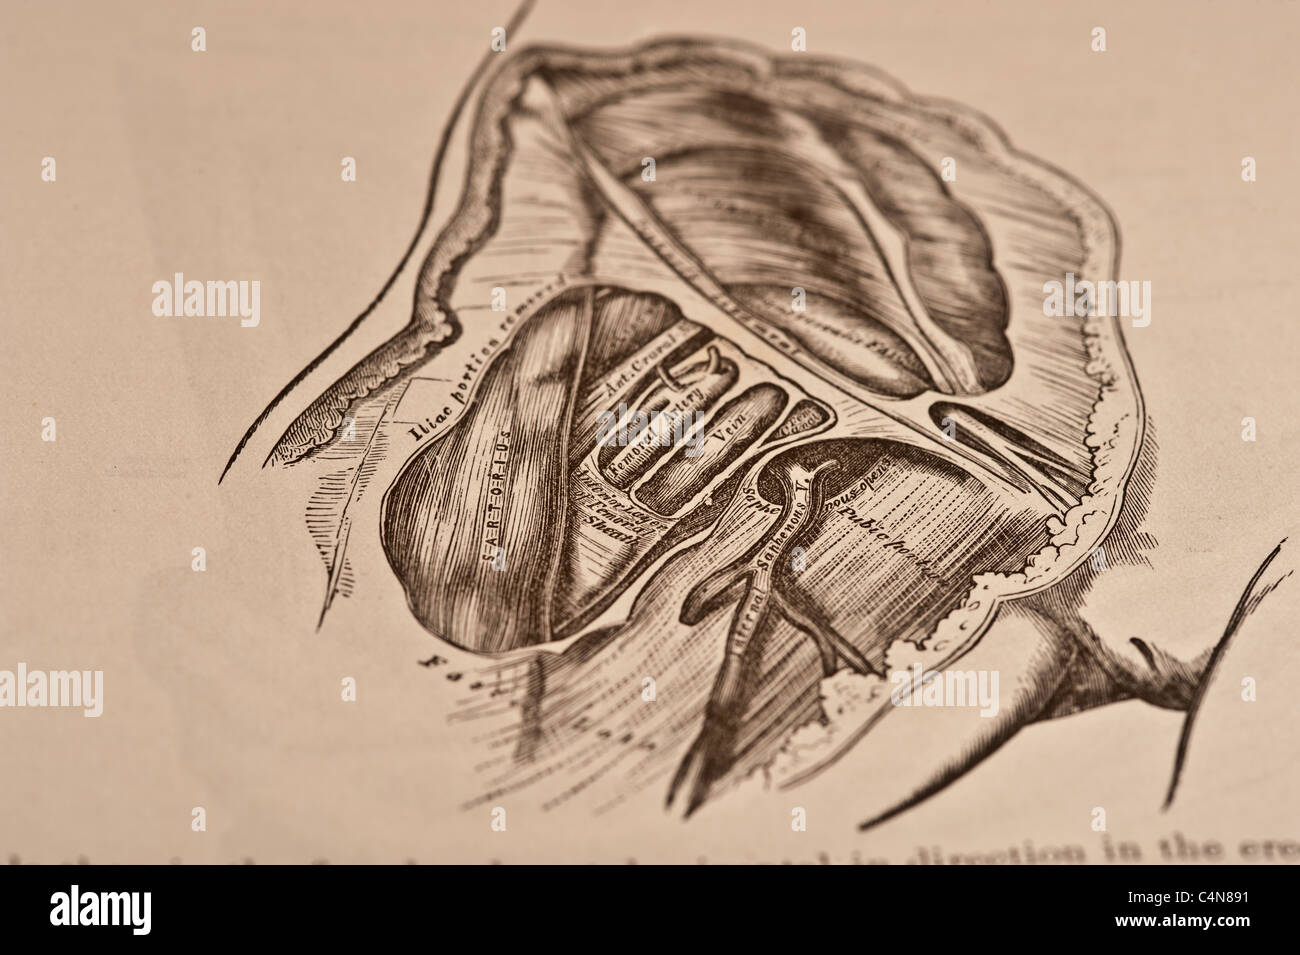 Anatomy Descriptive Surgical Copyright 1883 Stock Photos & Anatomy ...